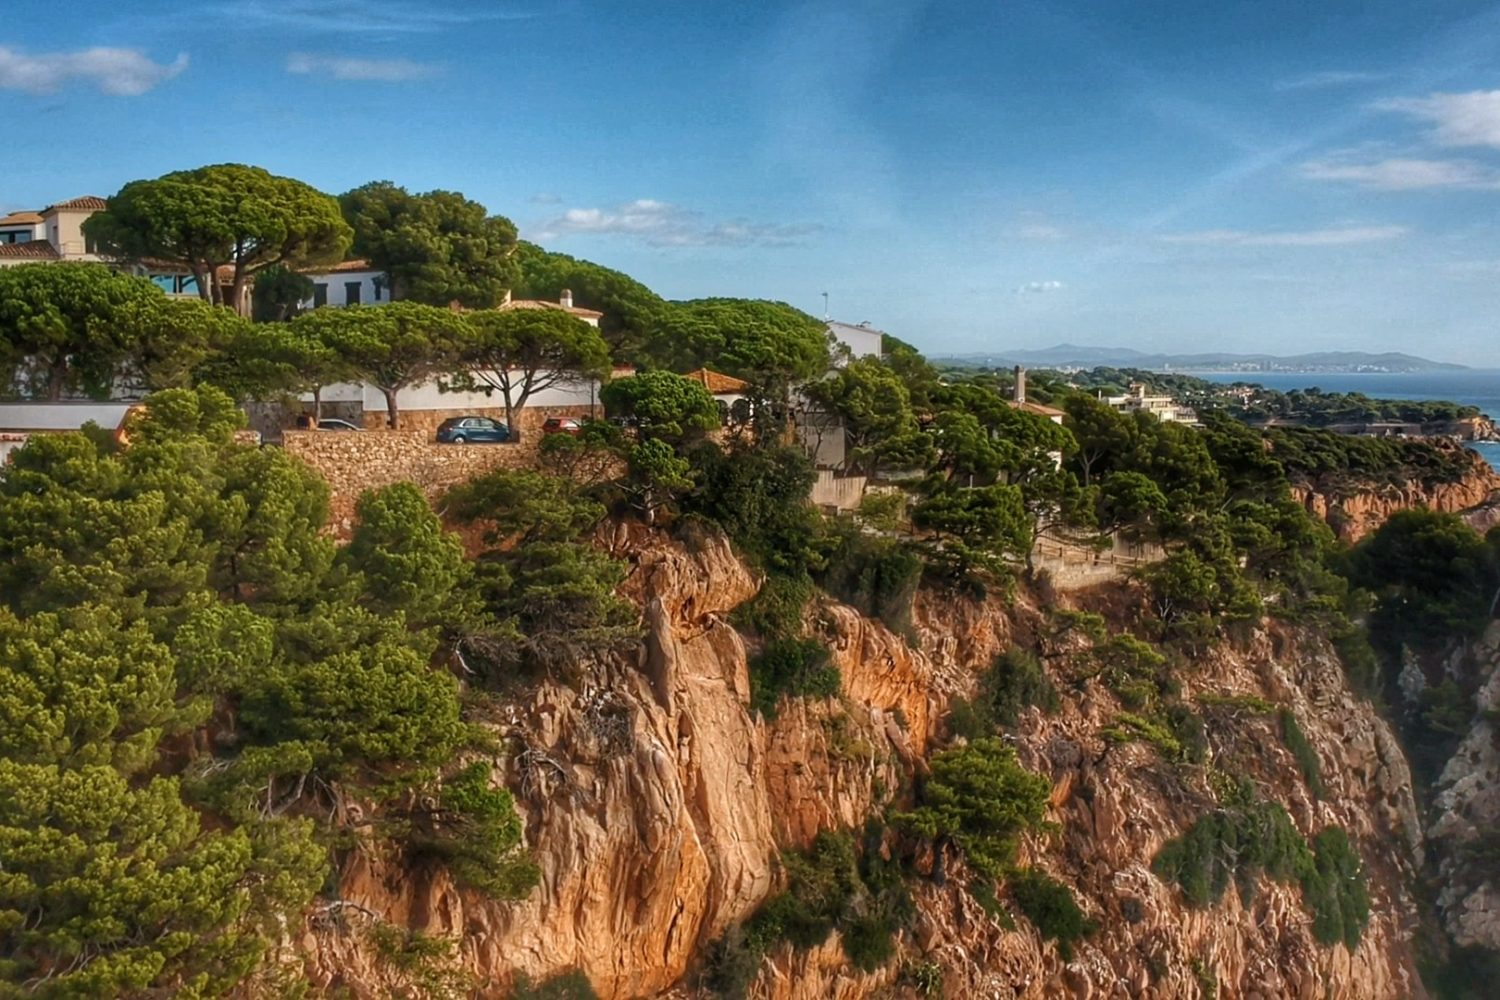 Walk, kayak and swim in the Costa Brava. Fully personalized small group tours in the Costa Brava.